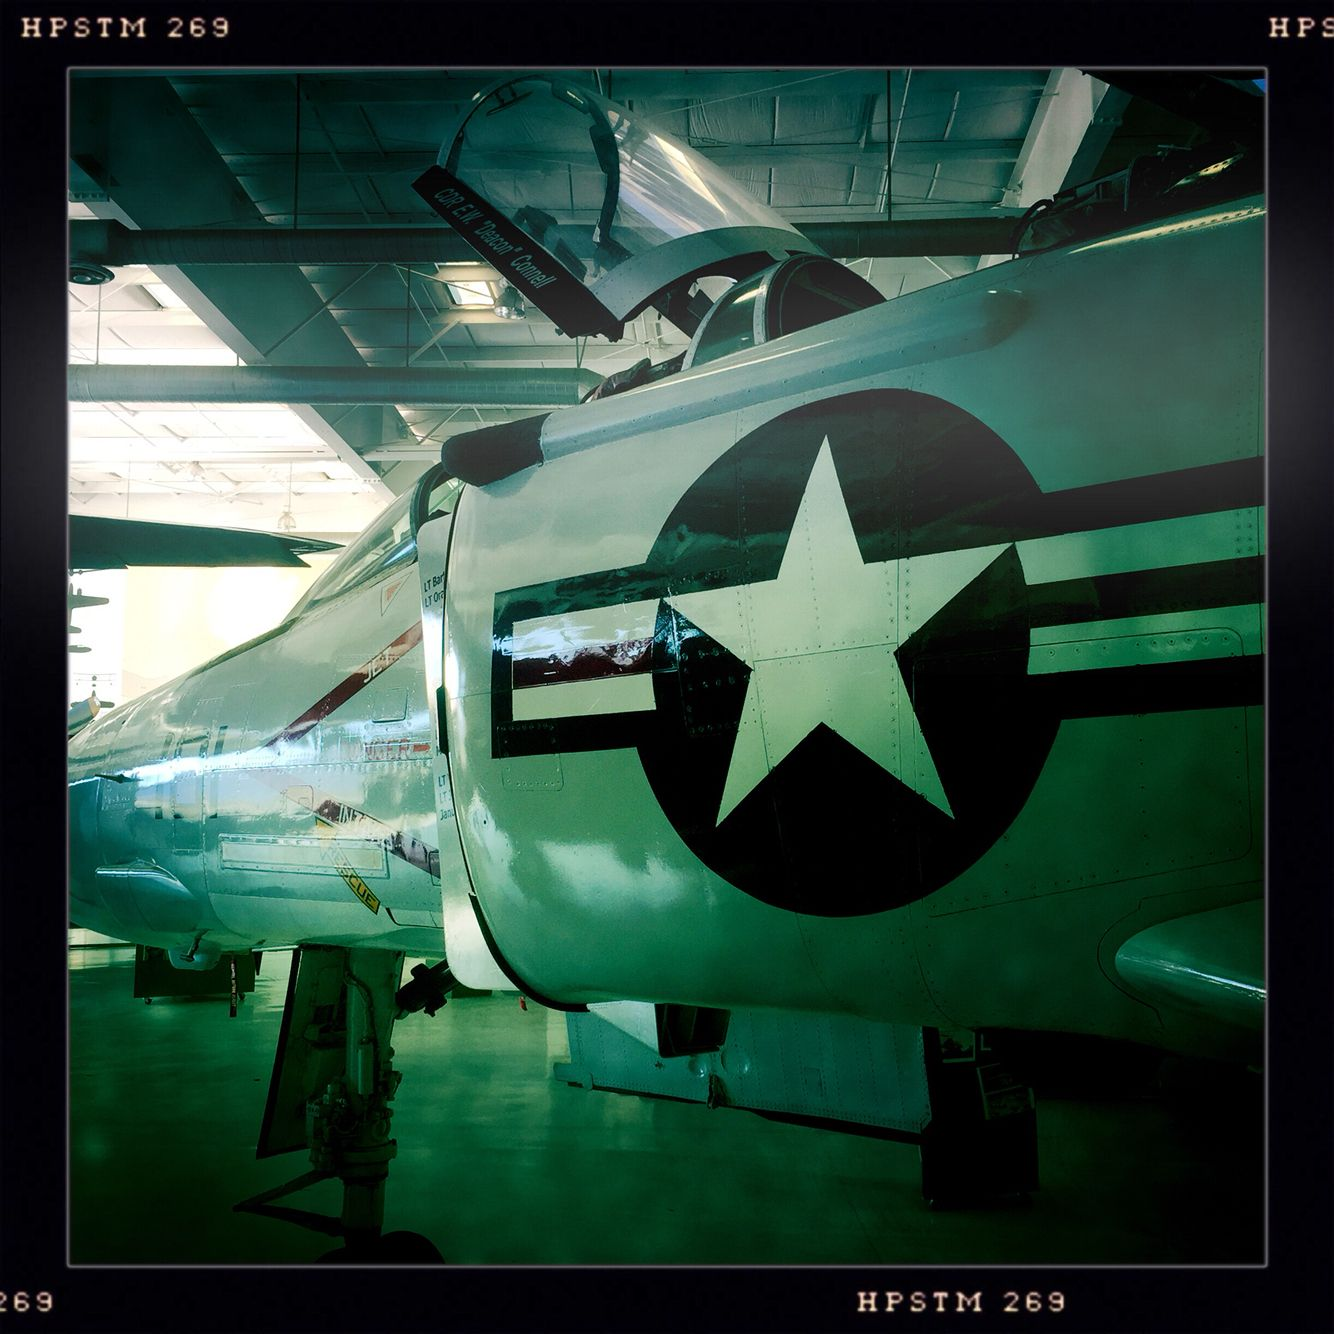 Pin by Nate Manchester on Palm Springs Air Museum Palm